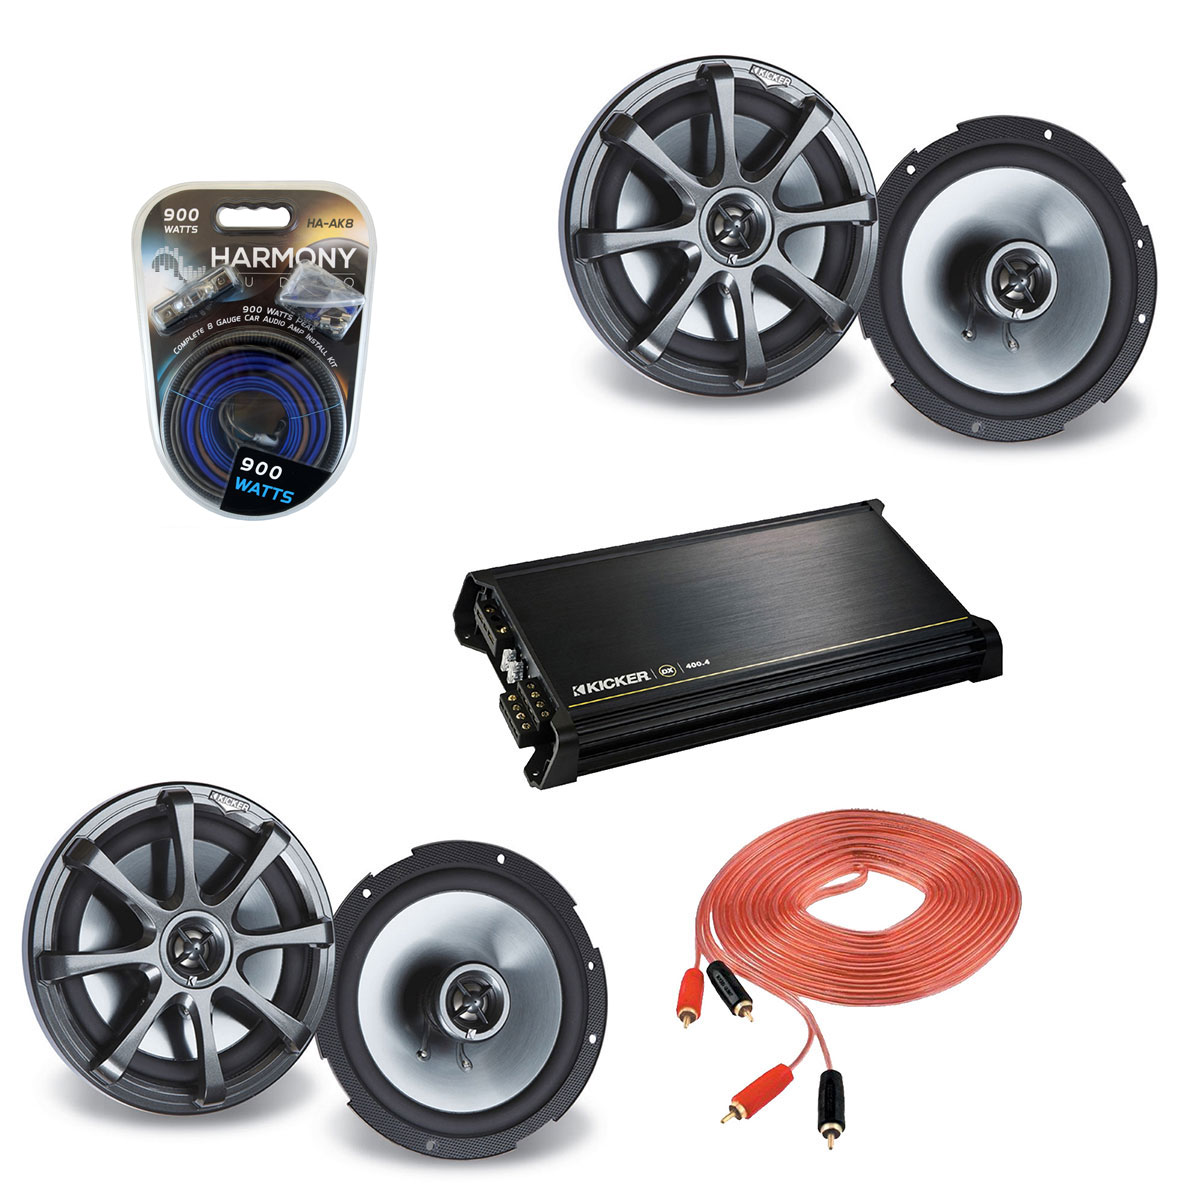 "Kicker Car Audio (2) KS650 Full Range 6.5"" Speaker Pairs with DX400.4 Amplifier & 8GA Amp Kit"